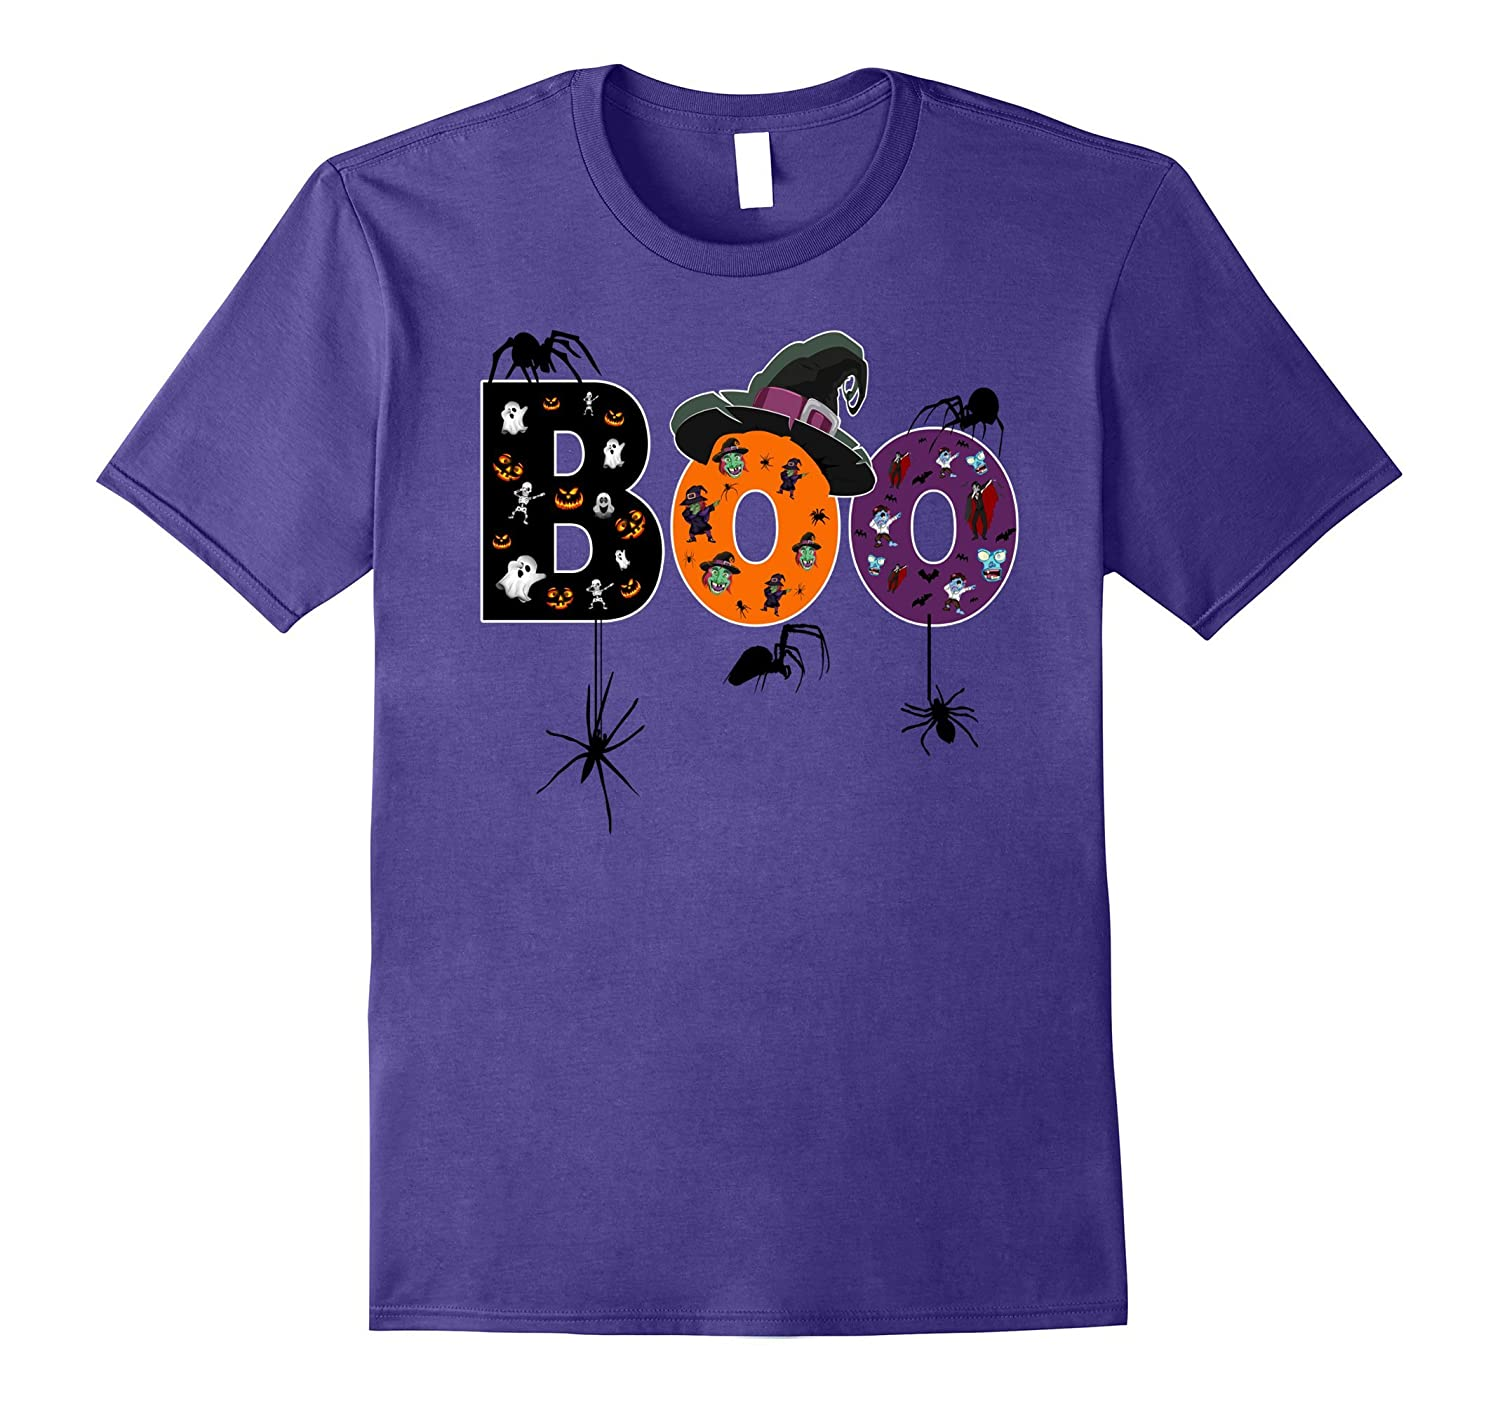 Awesome BOO Halloween t-shirt with spiders witches ghosts-TJ